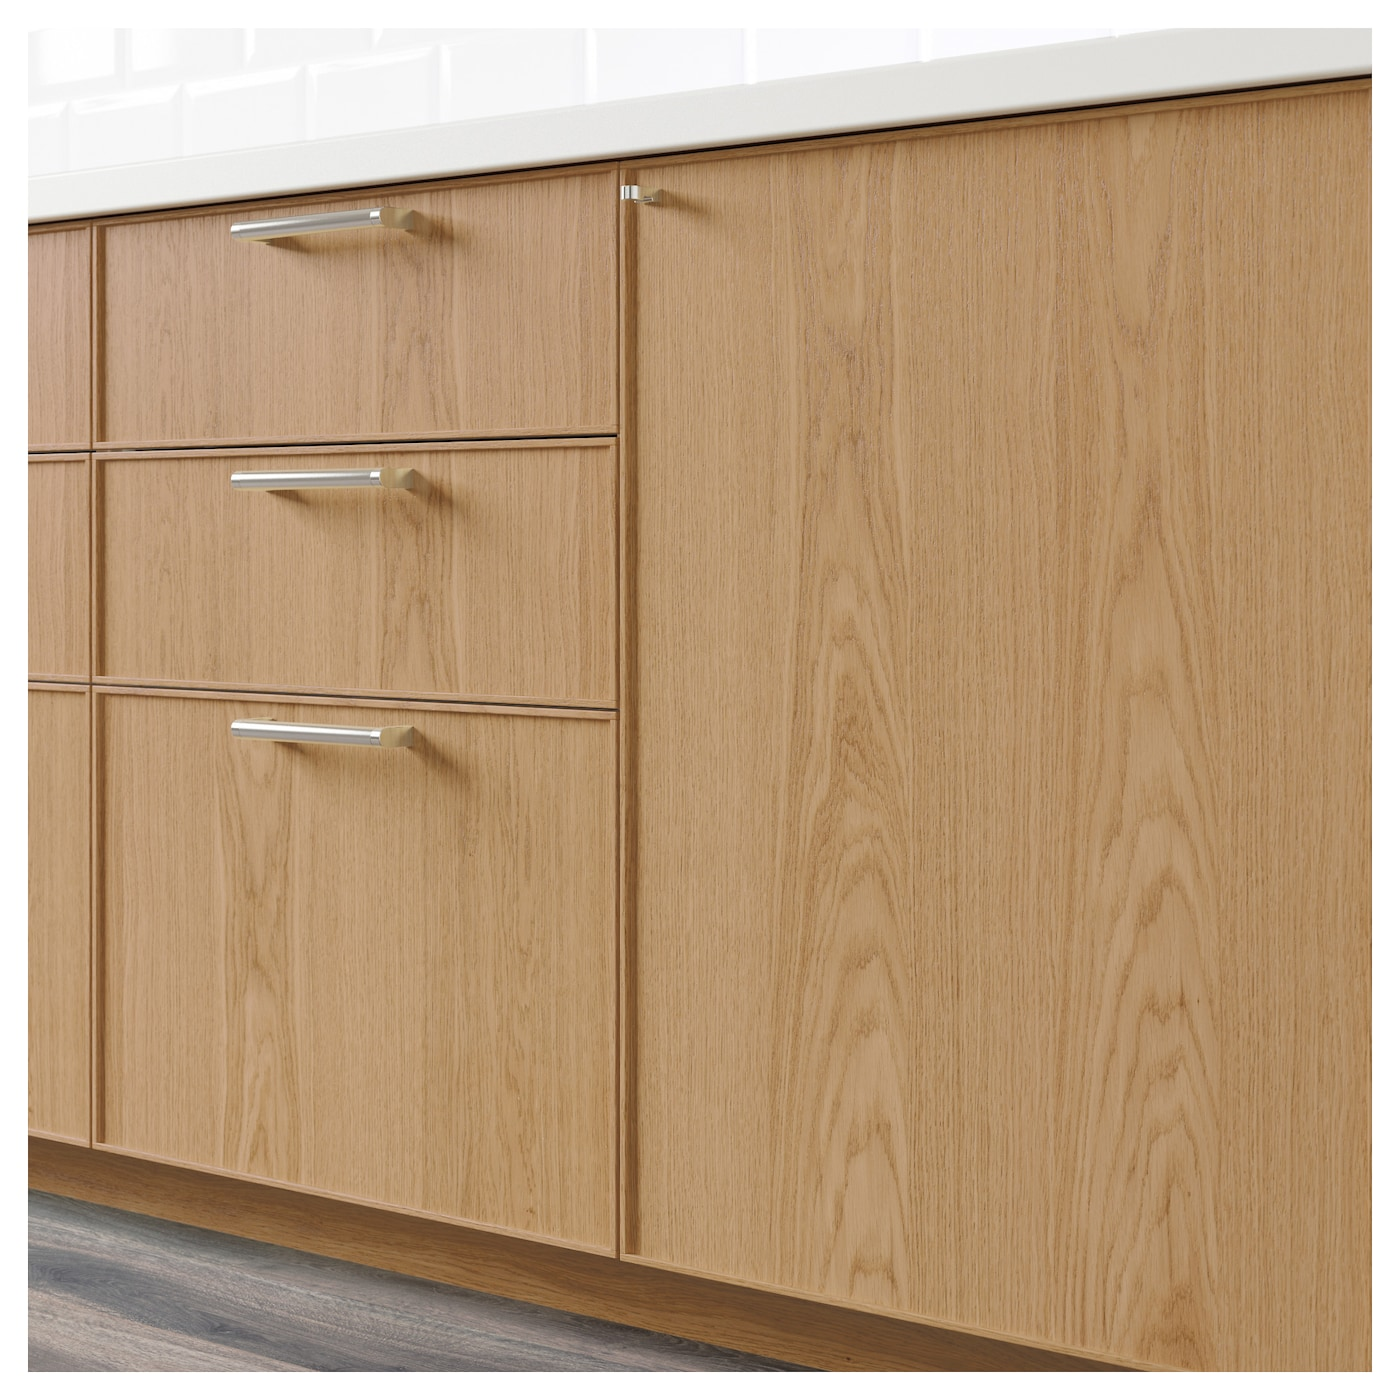 Ikea Ekestad Door The Solid Wood Frame Adds Ility And Makes Durable Long